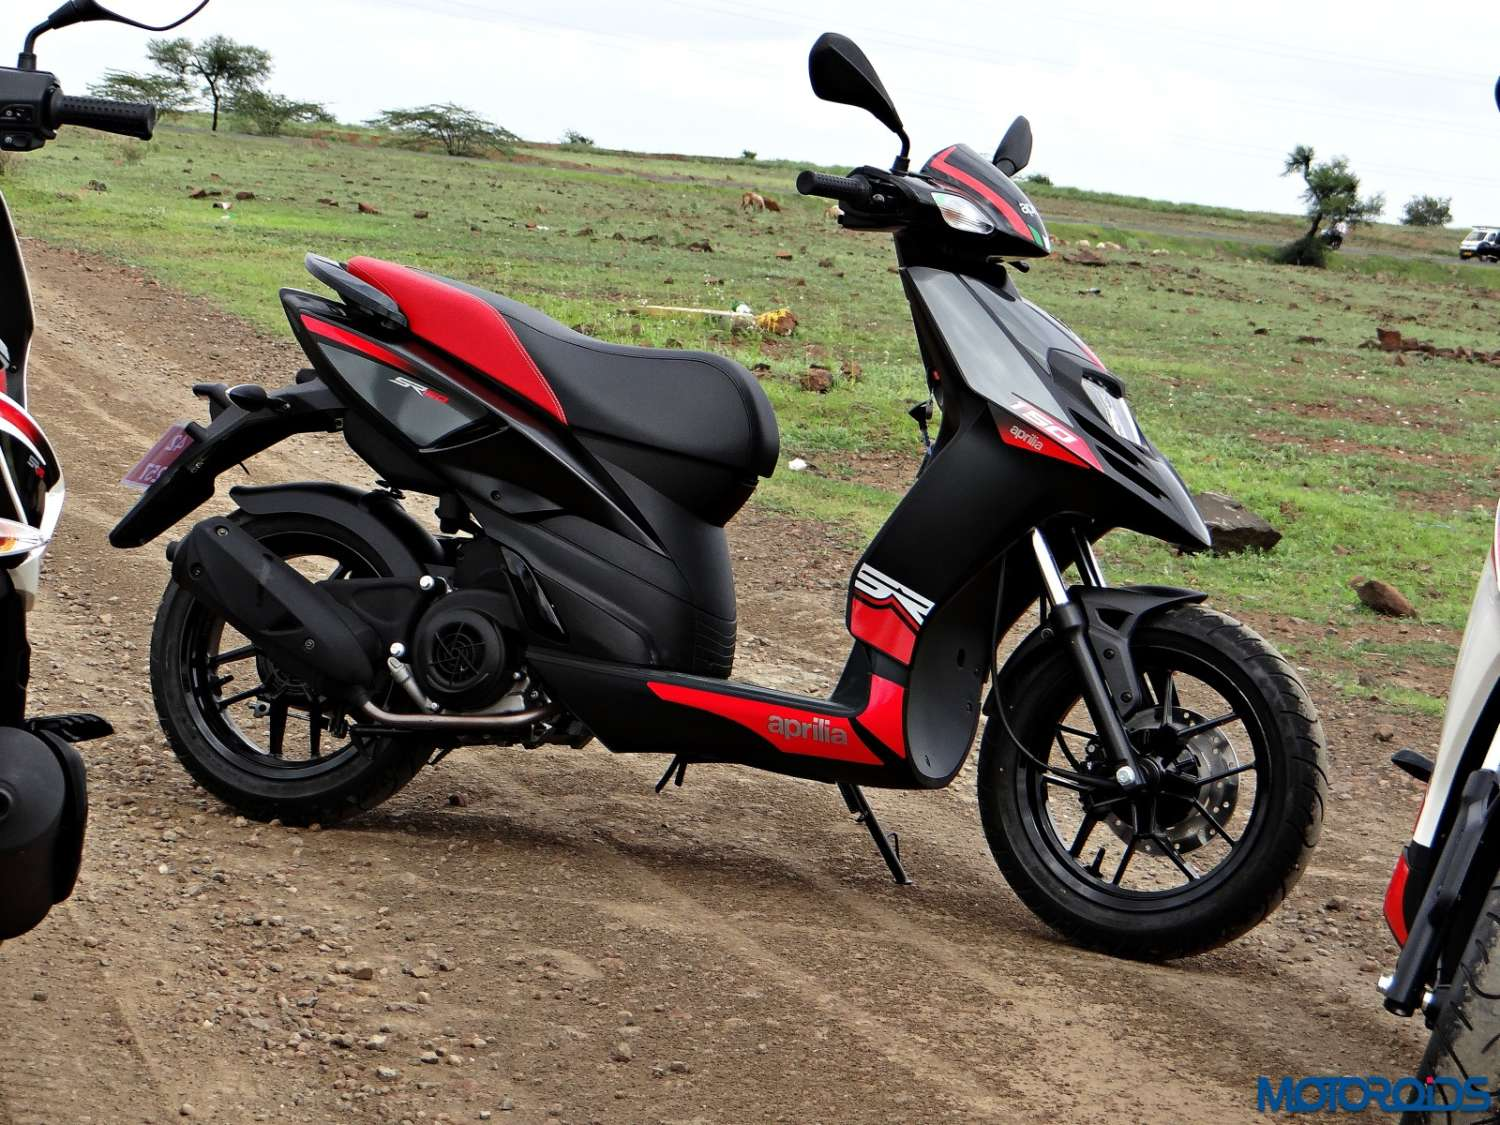 Aprilia SR 150 Review - Still Shots (2)